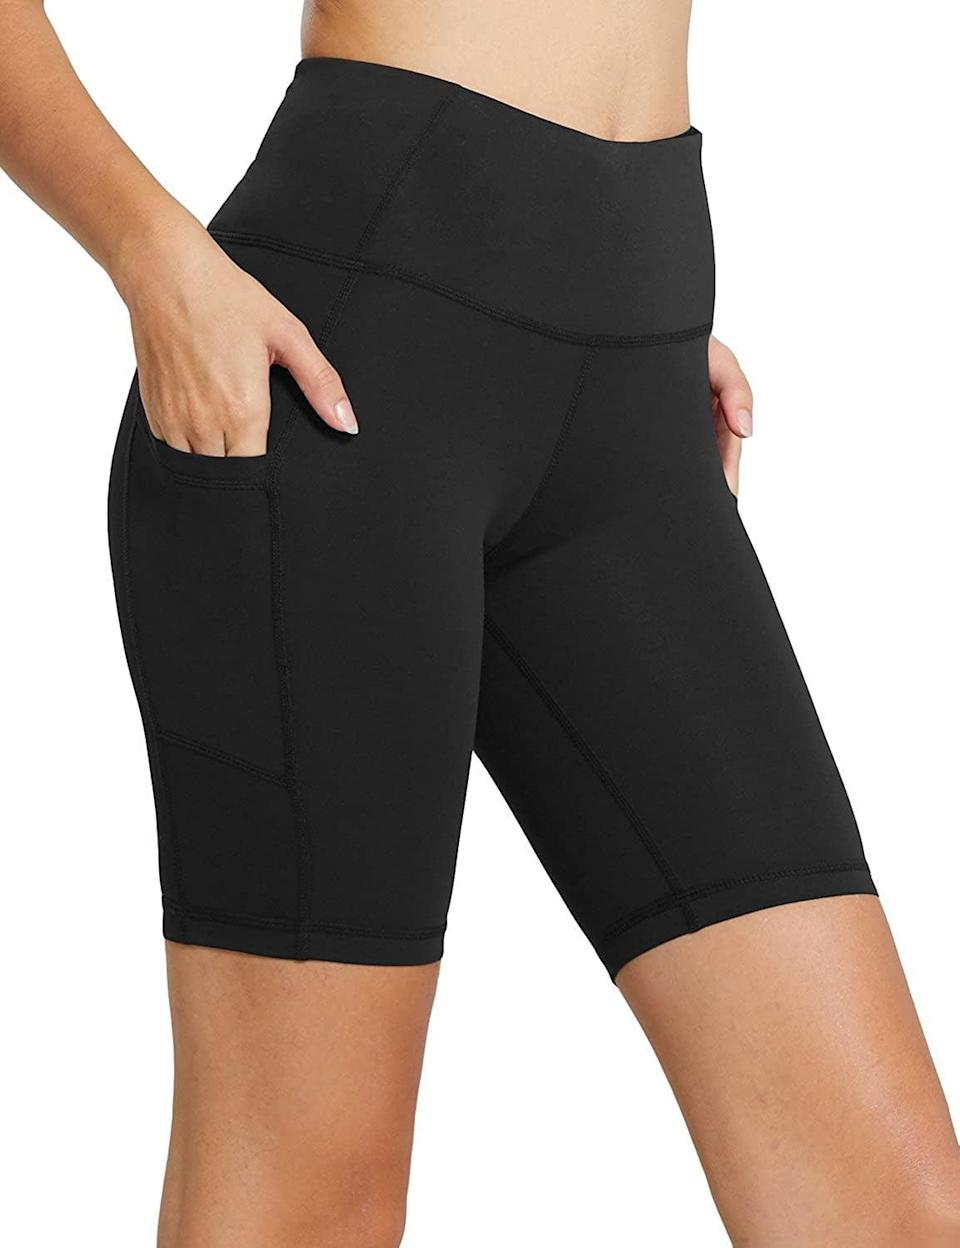 <p>Store your phone and headphones in these <span>Baleaf High Waist Workout Shorts</span> ($18, originally $21). They have over 60,000 positive reviews!</p>